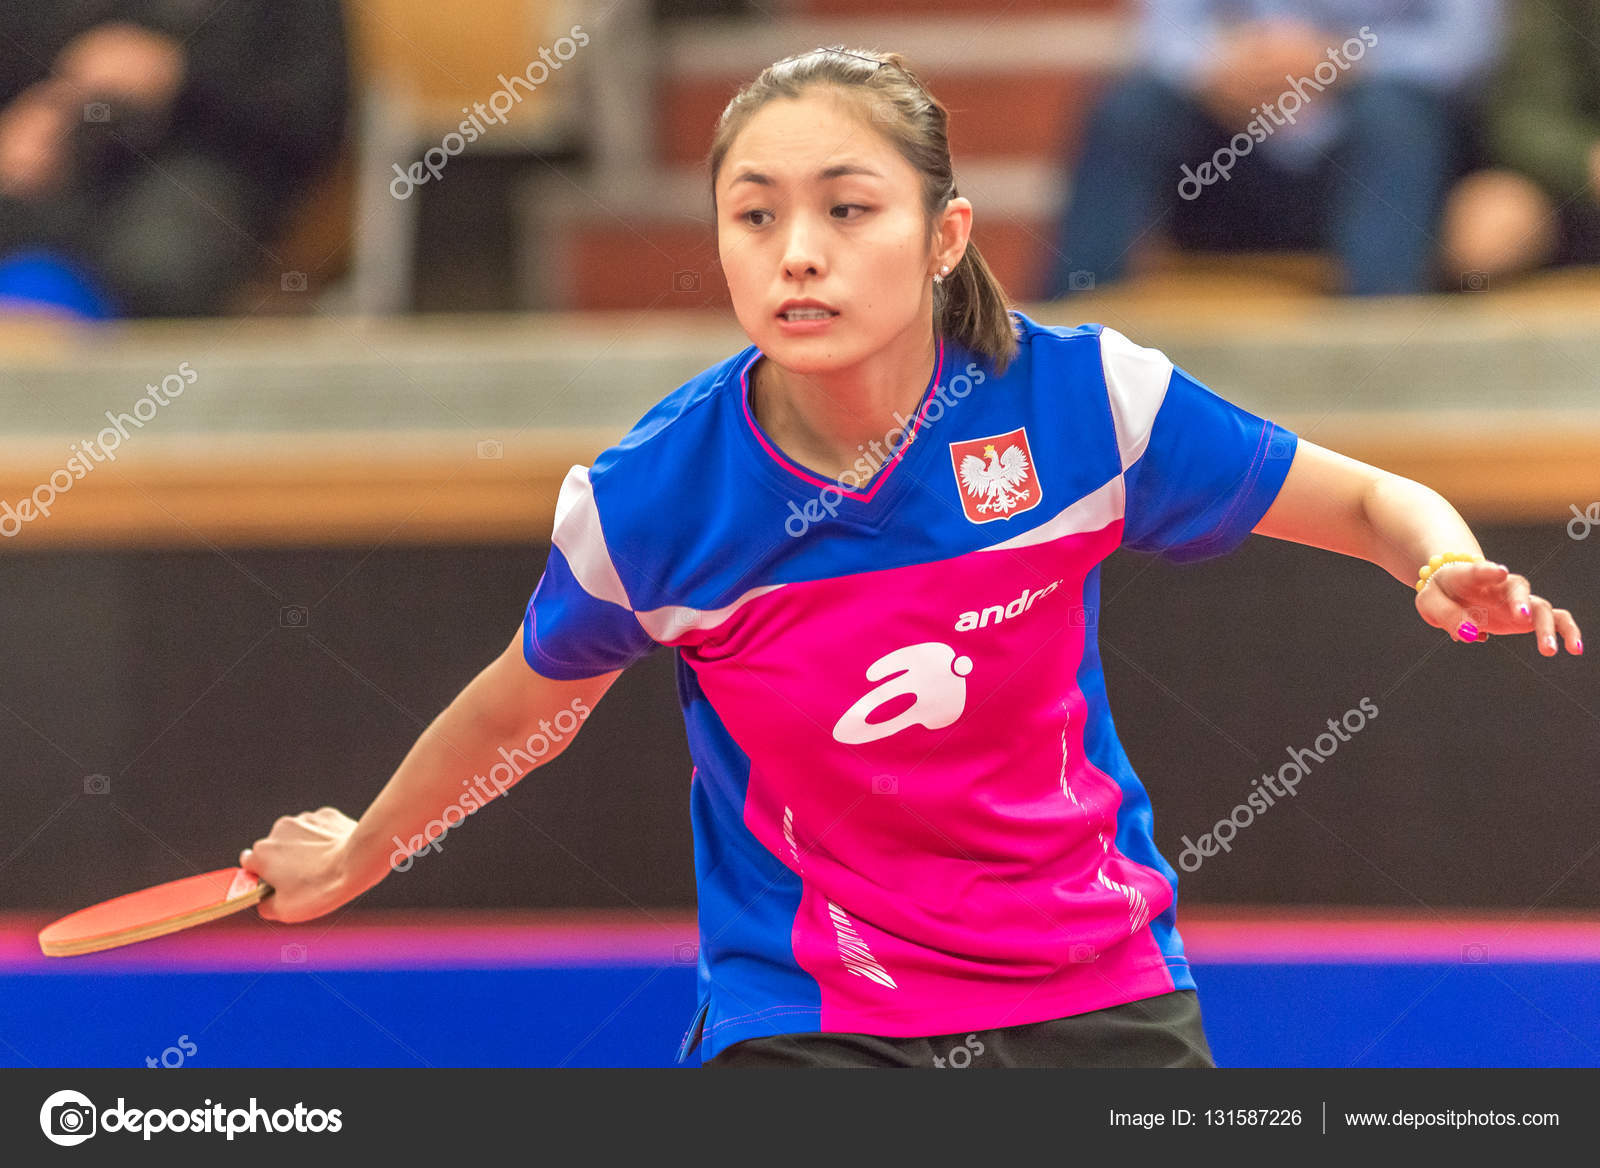 Kasumi Ishikawa Jpn Vs Qian Li Pol In The Table Tennis